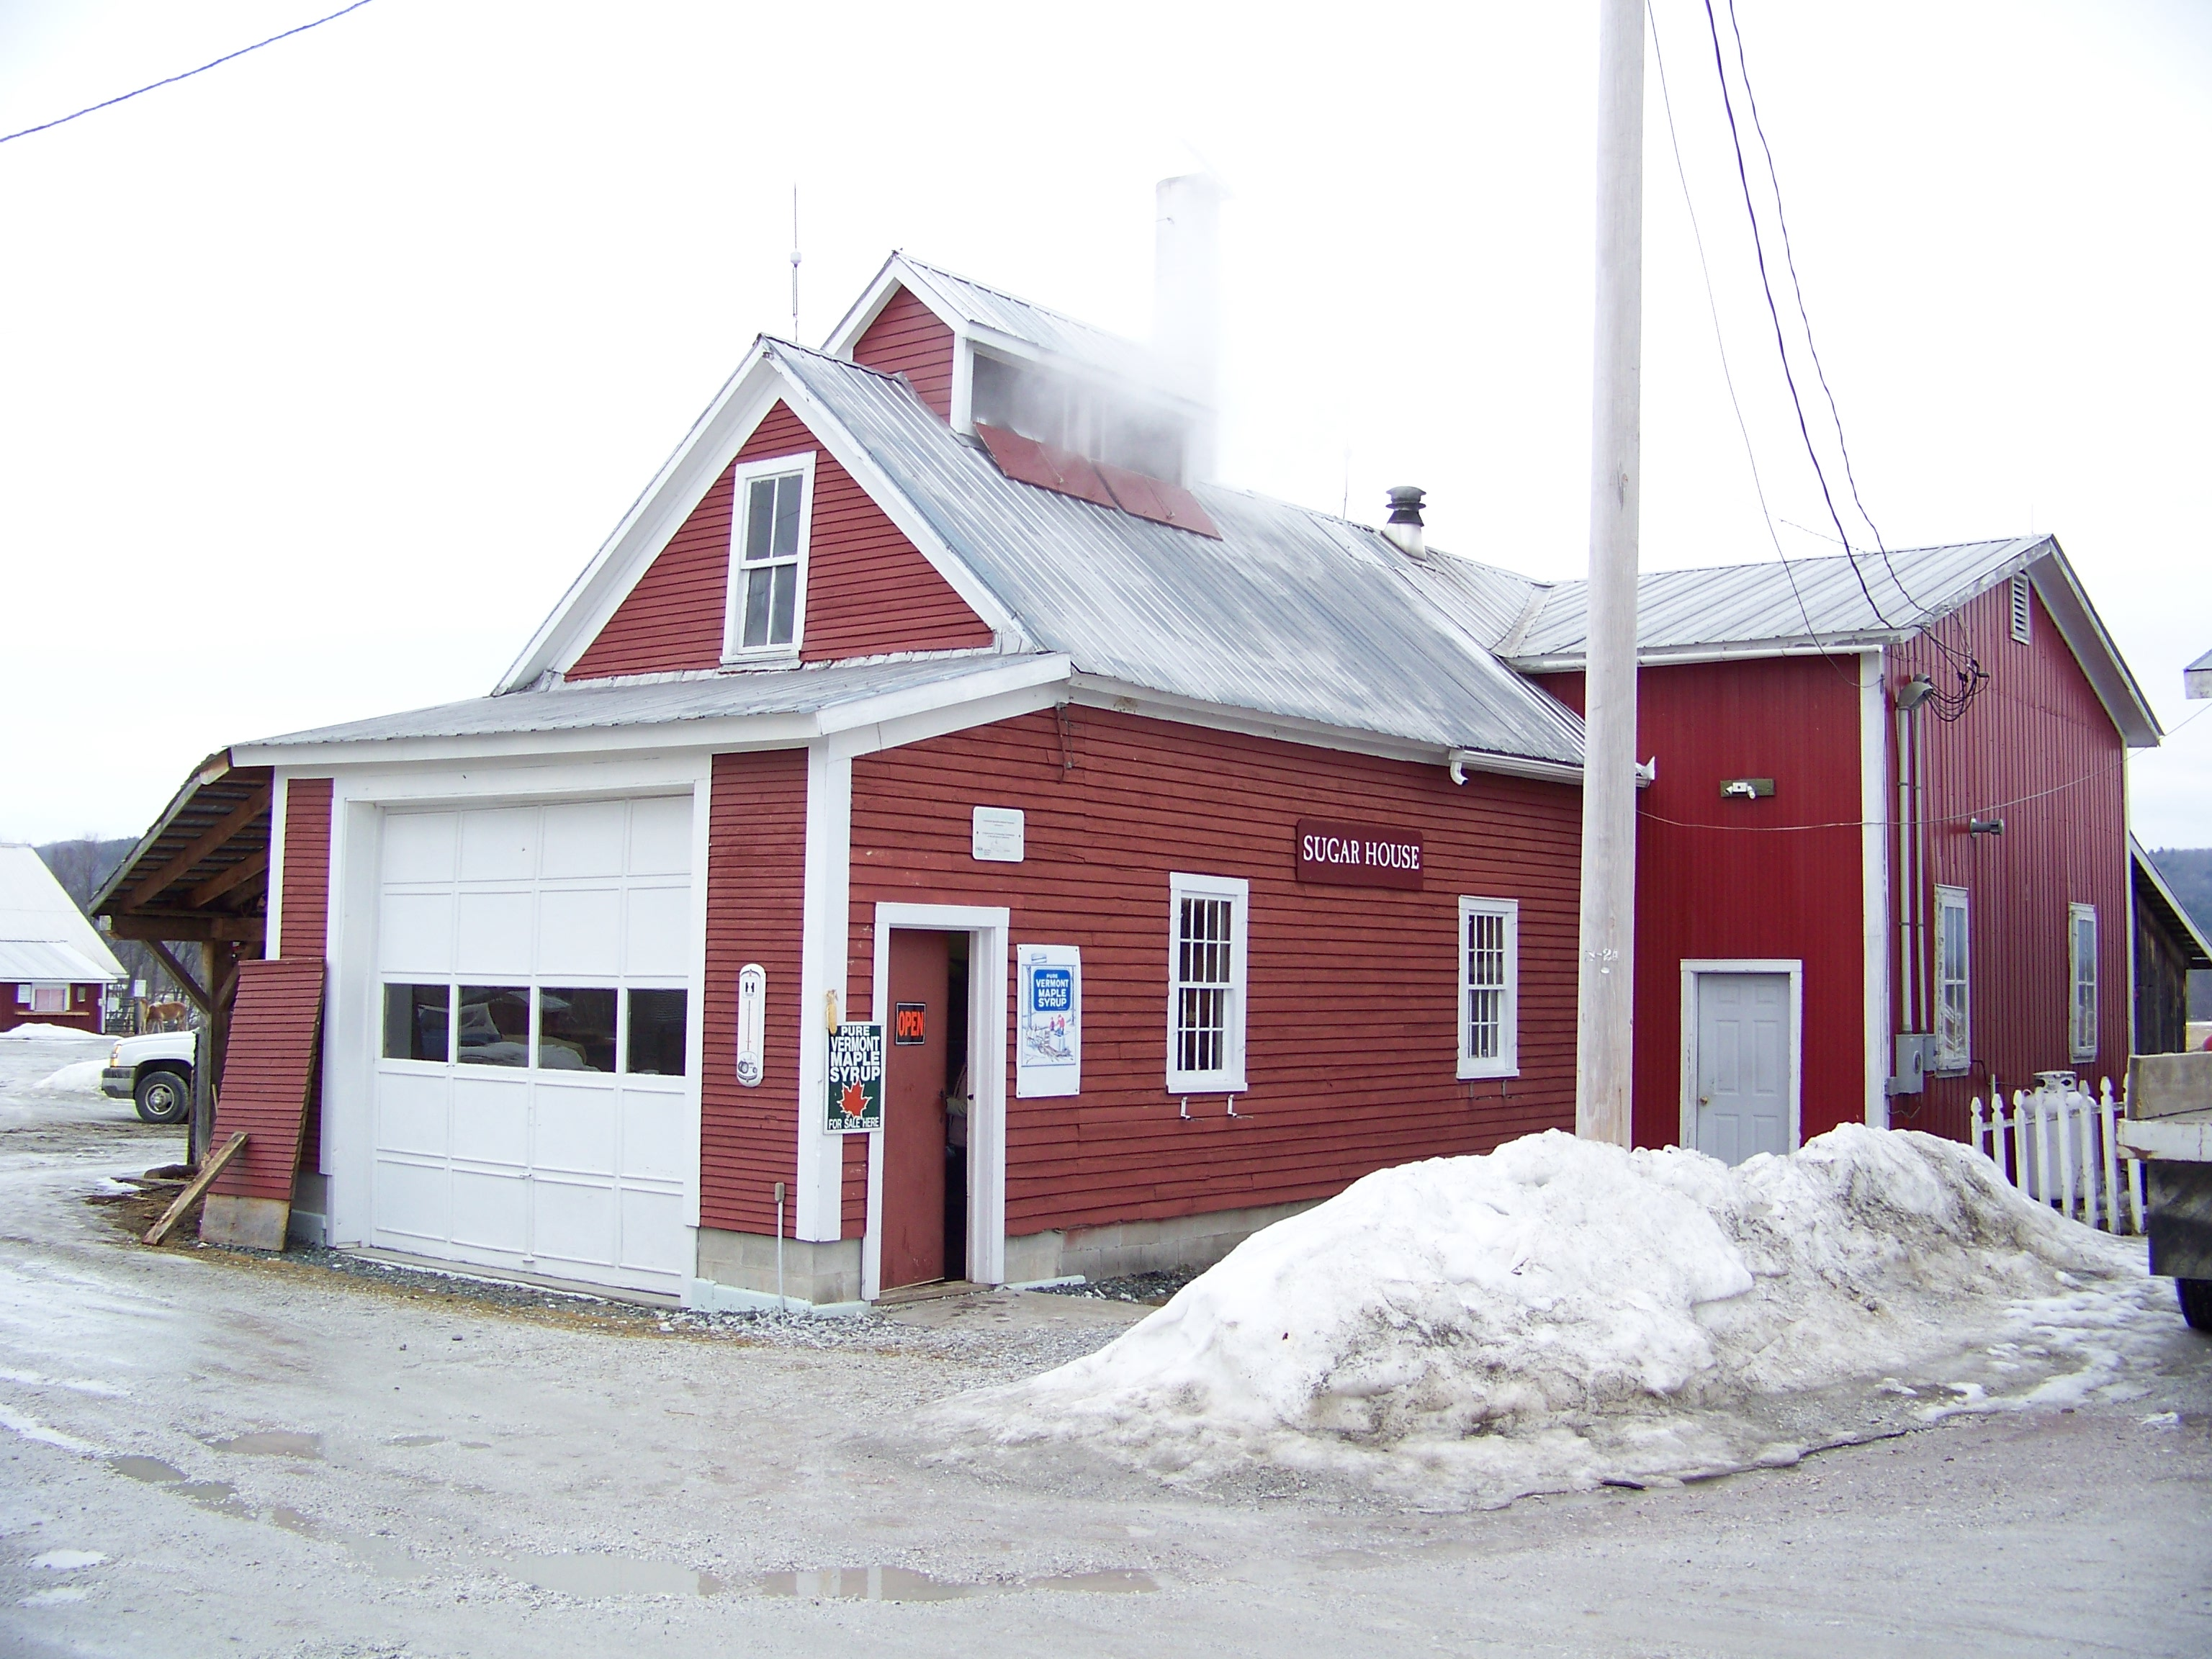 Fred & Diancy (Montague) Boyden's sugar house at the junction of Route 104 & 15 in Cambridge - jwboyden004